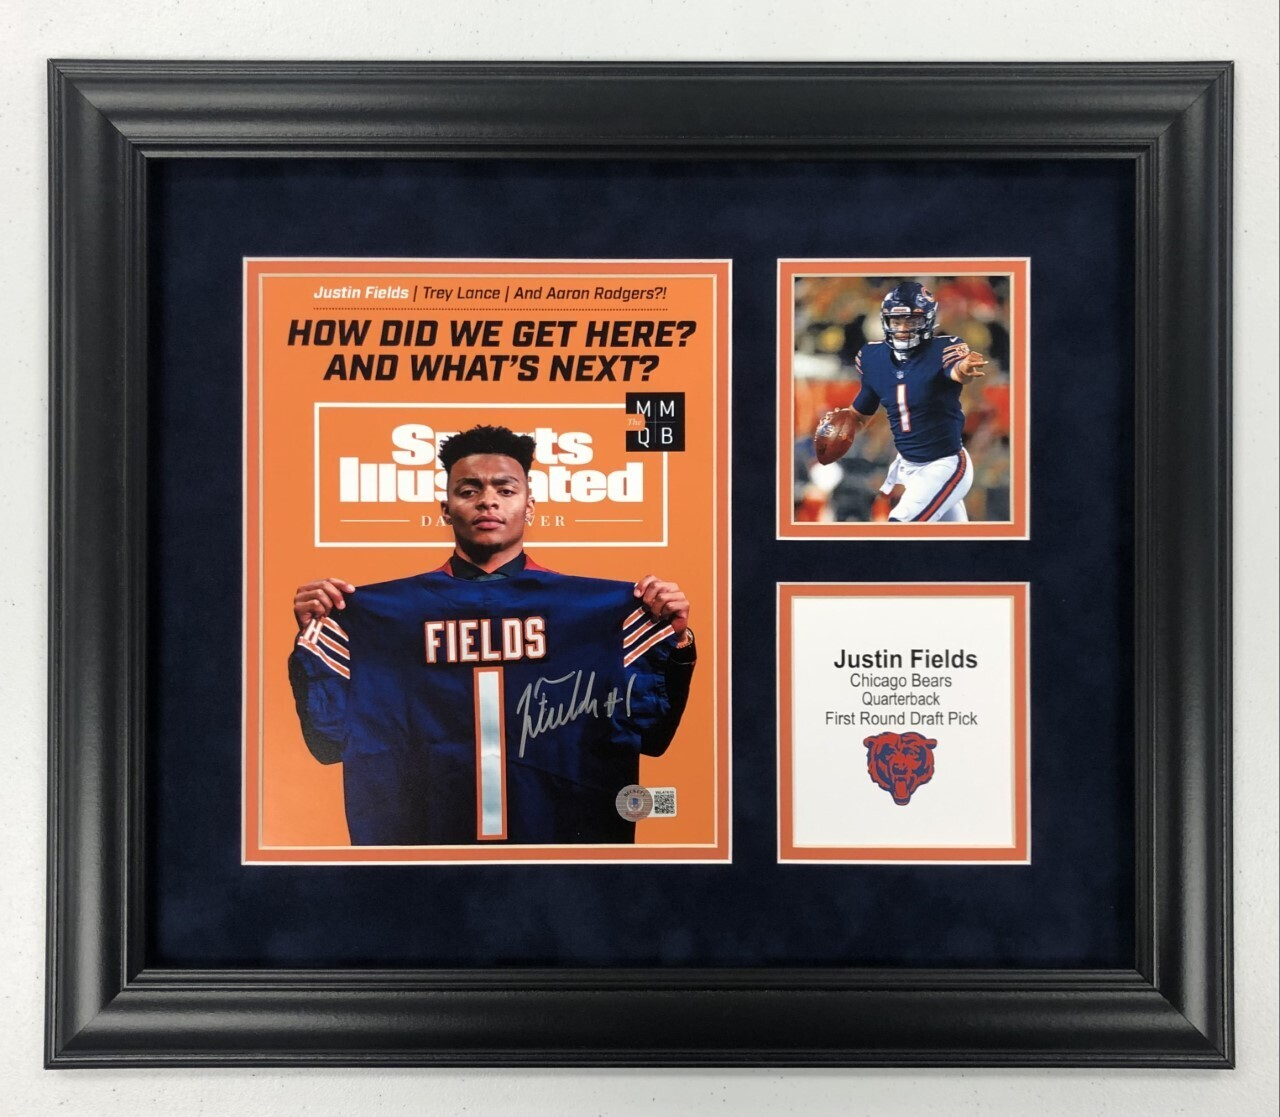 Justin Fields Signed + FRAMED 8x10 Photo Display (Legends Style)